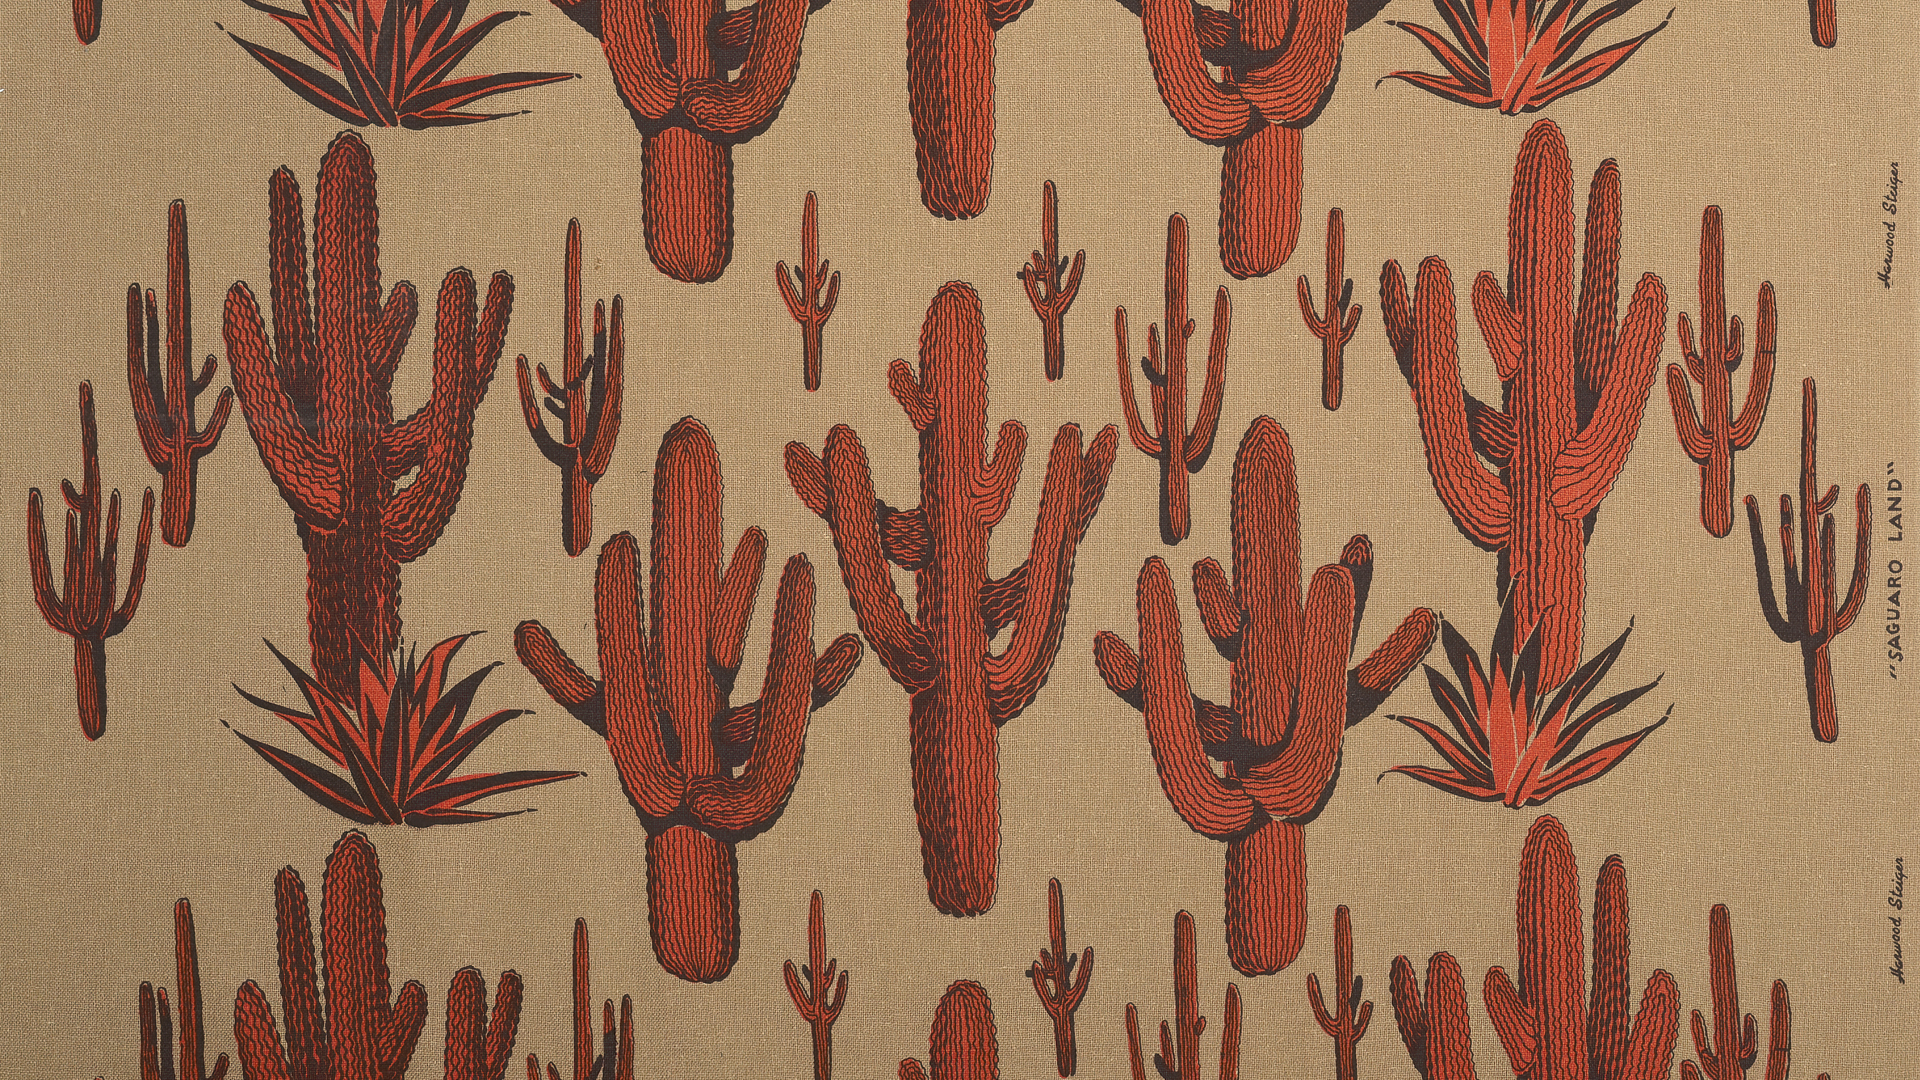 A Harwood Steiger Fabric with Saguaros